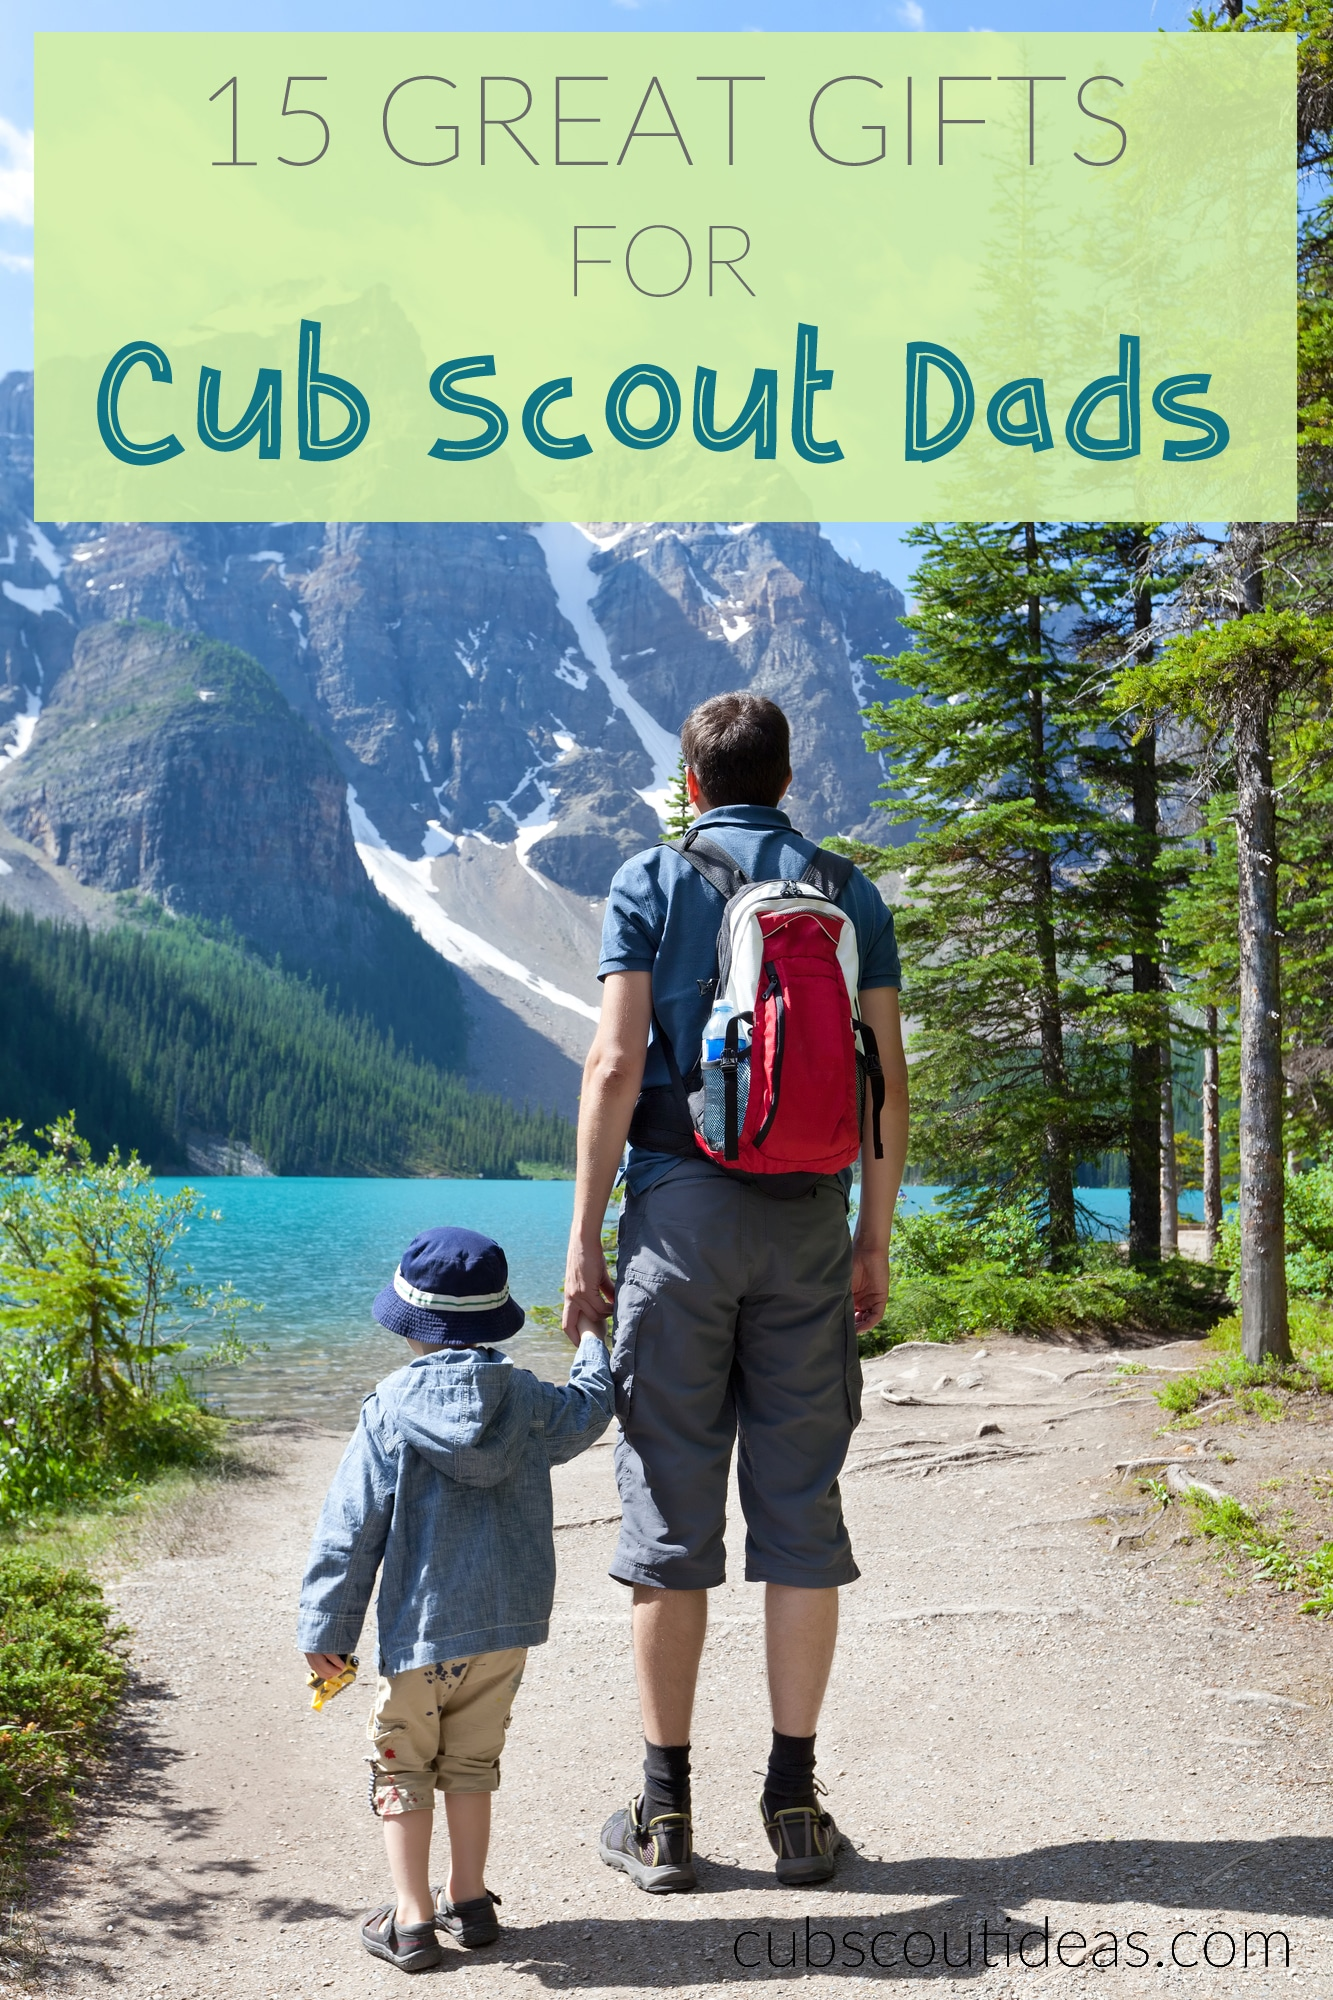 15 Cool (And Useful) Gifts For Cub Scout Dads (and Moms!)